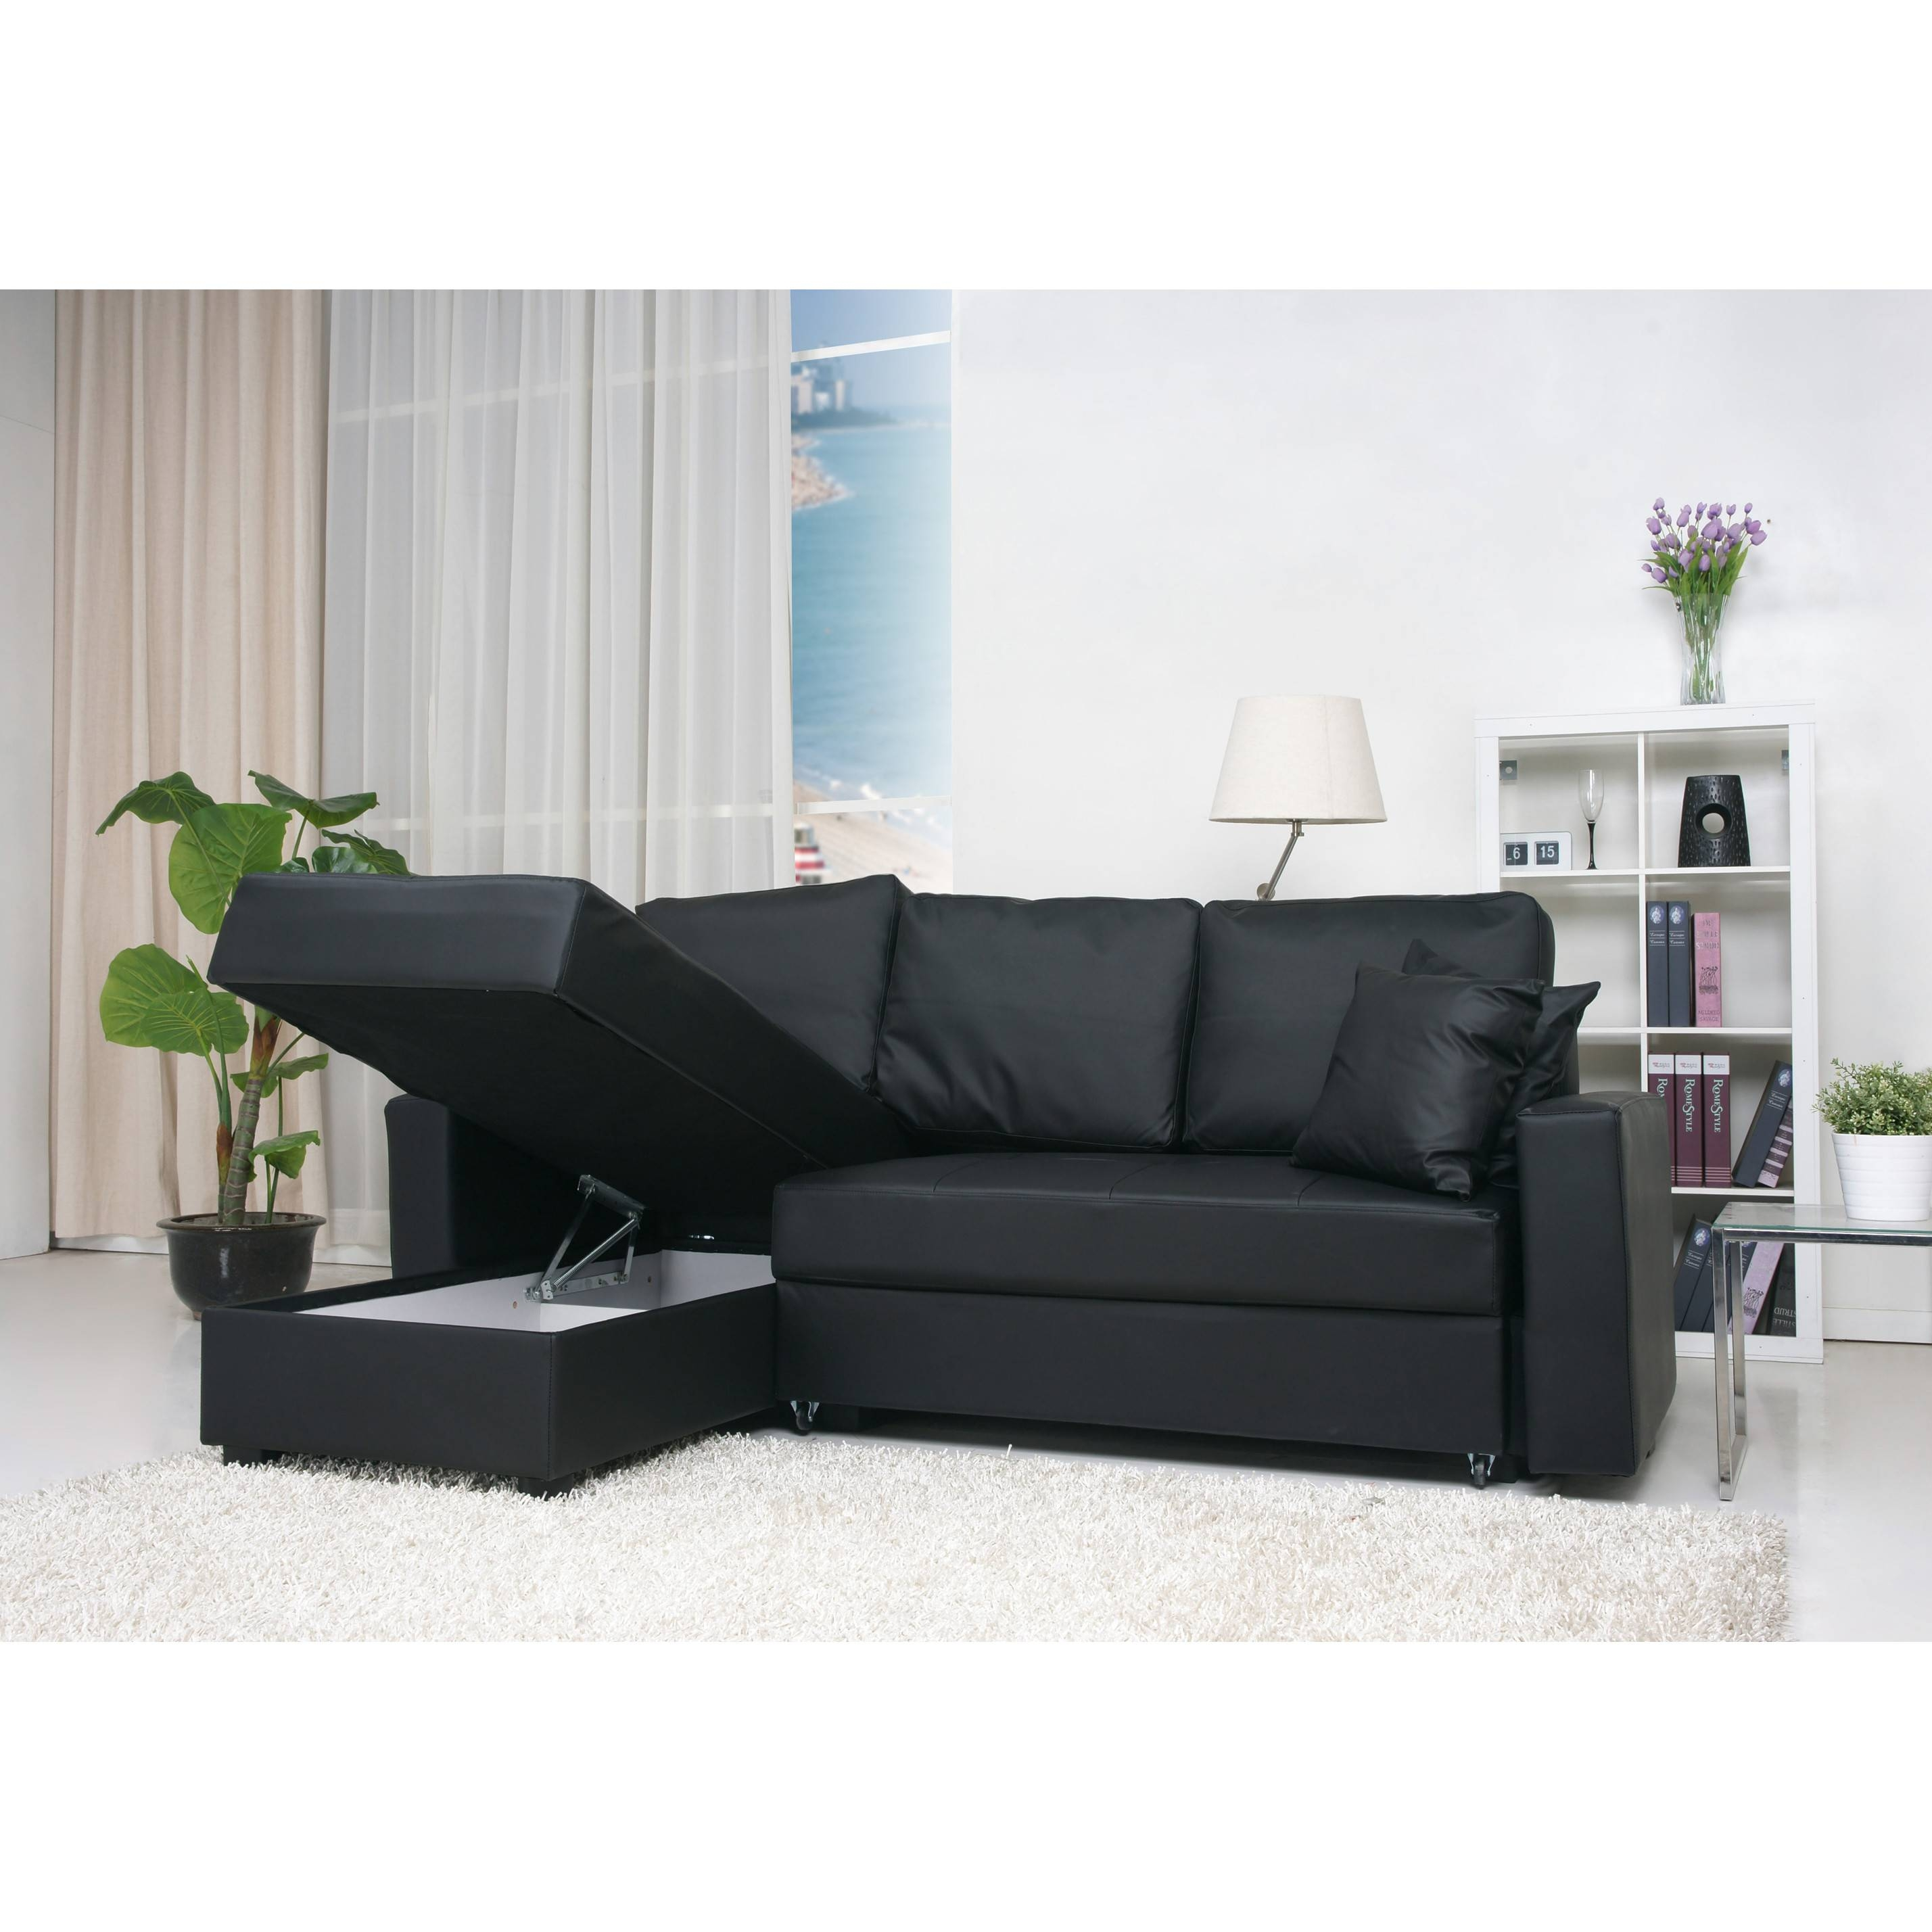 Www.bunscoilaniuir/s/2016/12/compact-Sectional intended for Compact Sectional Sofas (Image 12 of 30)